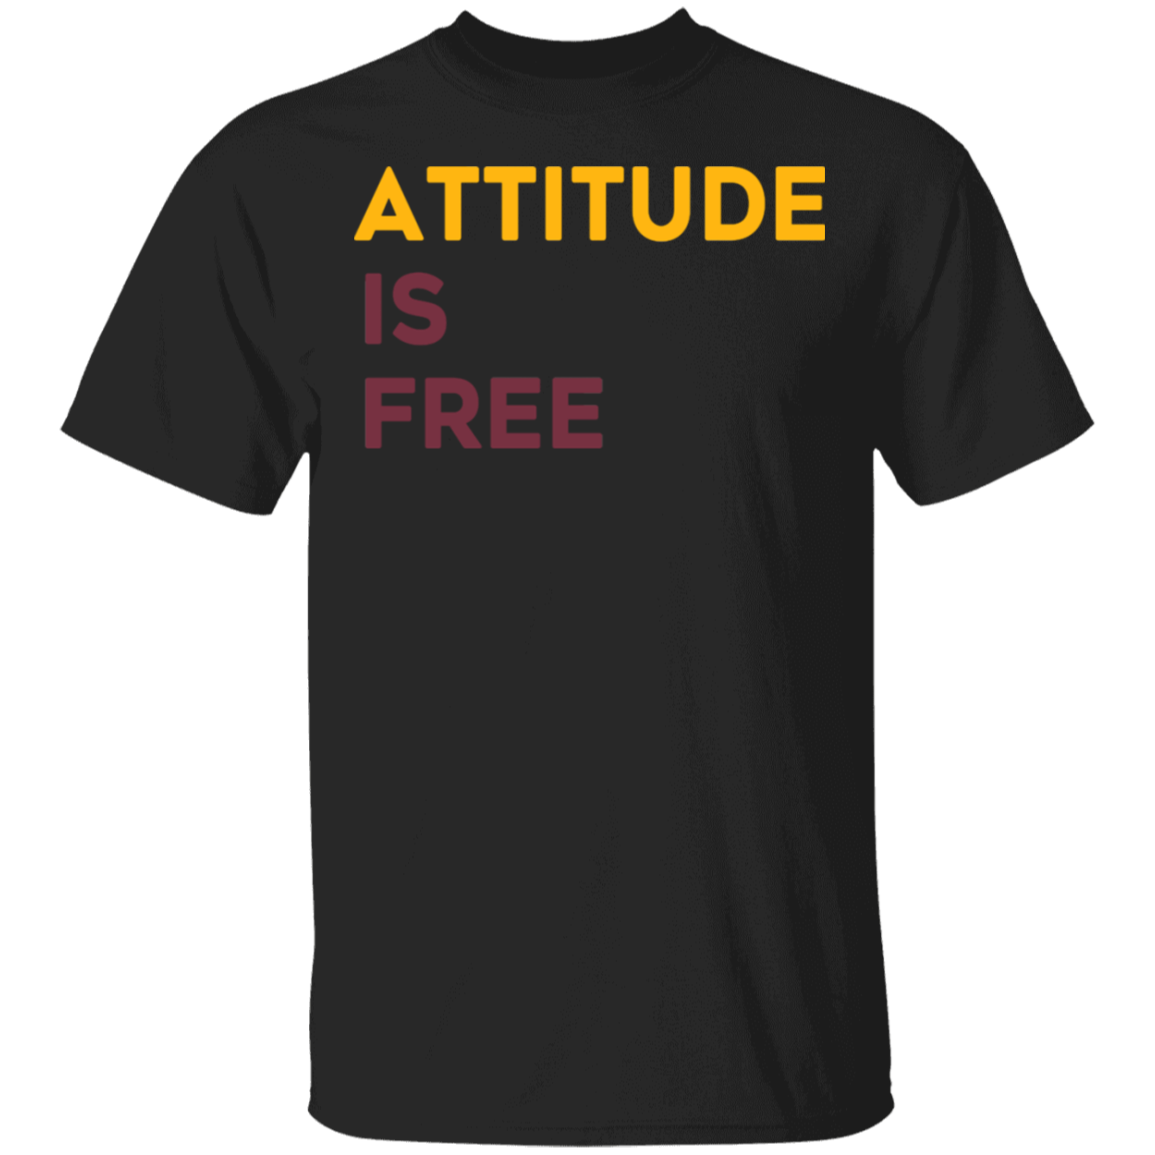 Attitude Is Free T-Shirt Alex Smith Three-Line Tee Unisex Clothes Motivation Positive Attitude